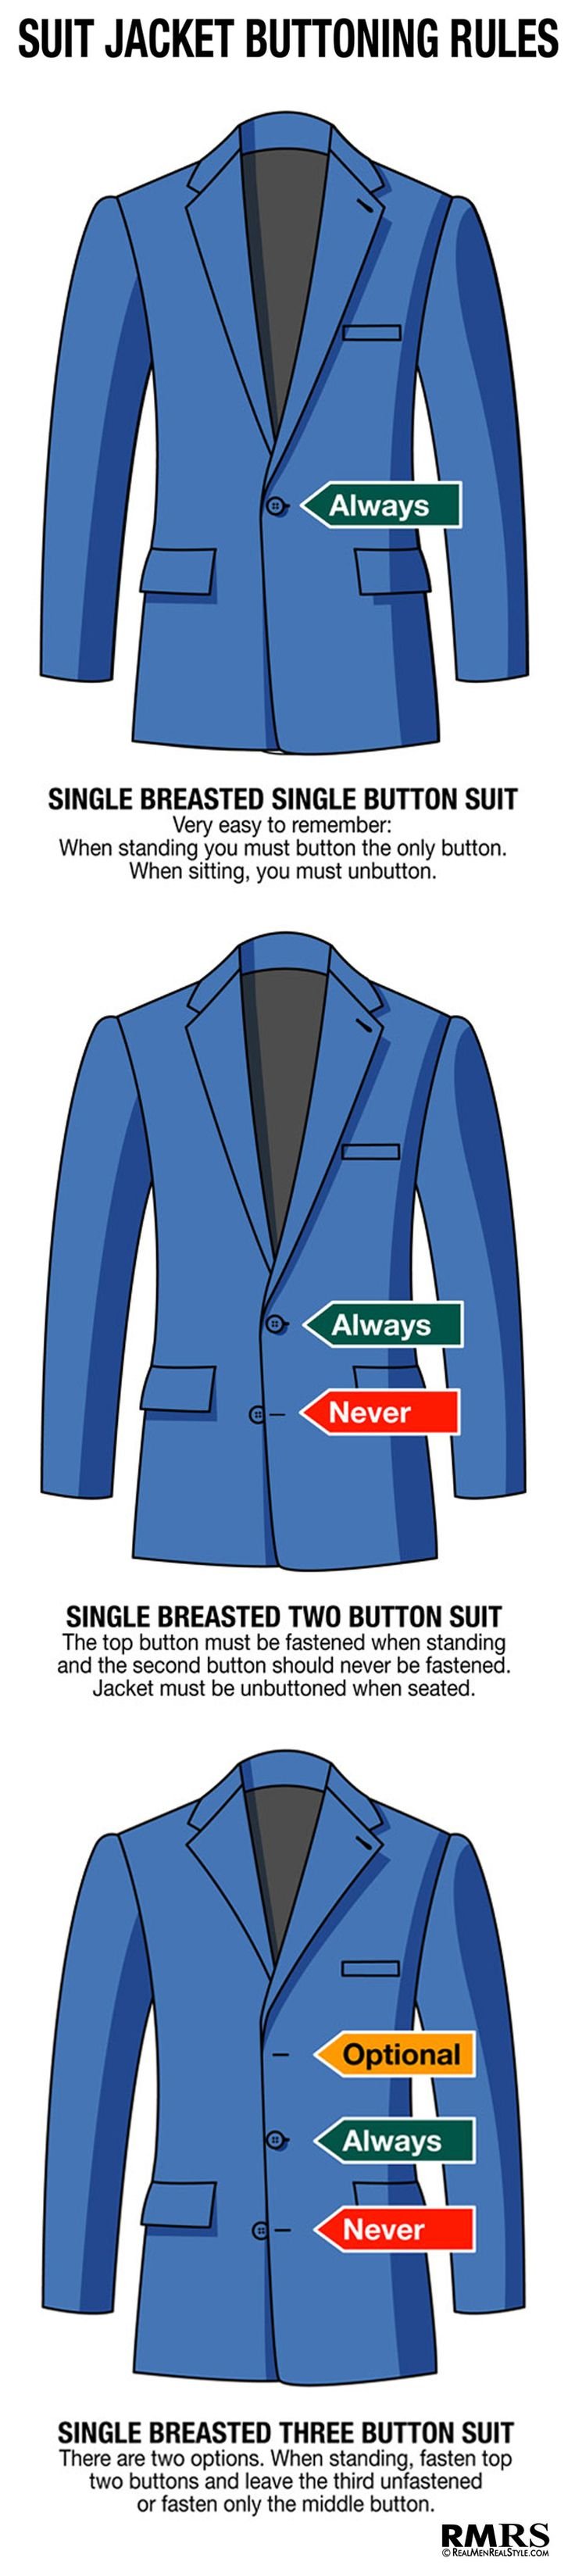 The right way to button a jacket